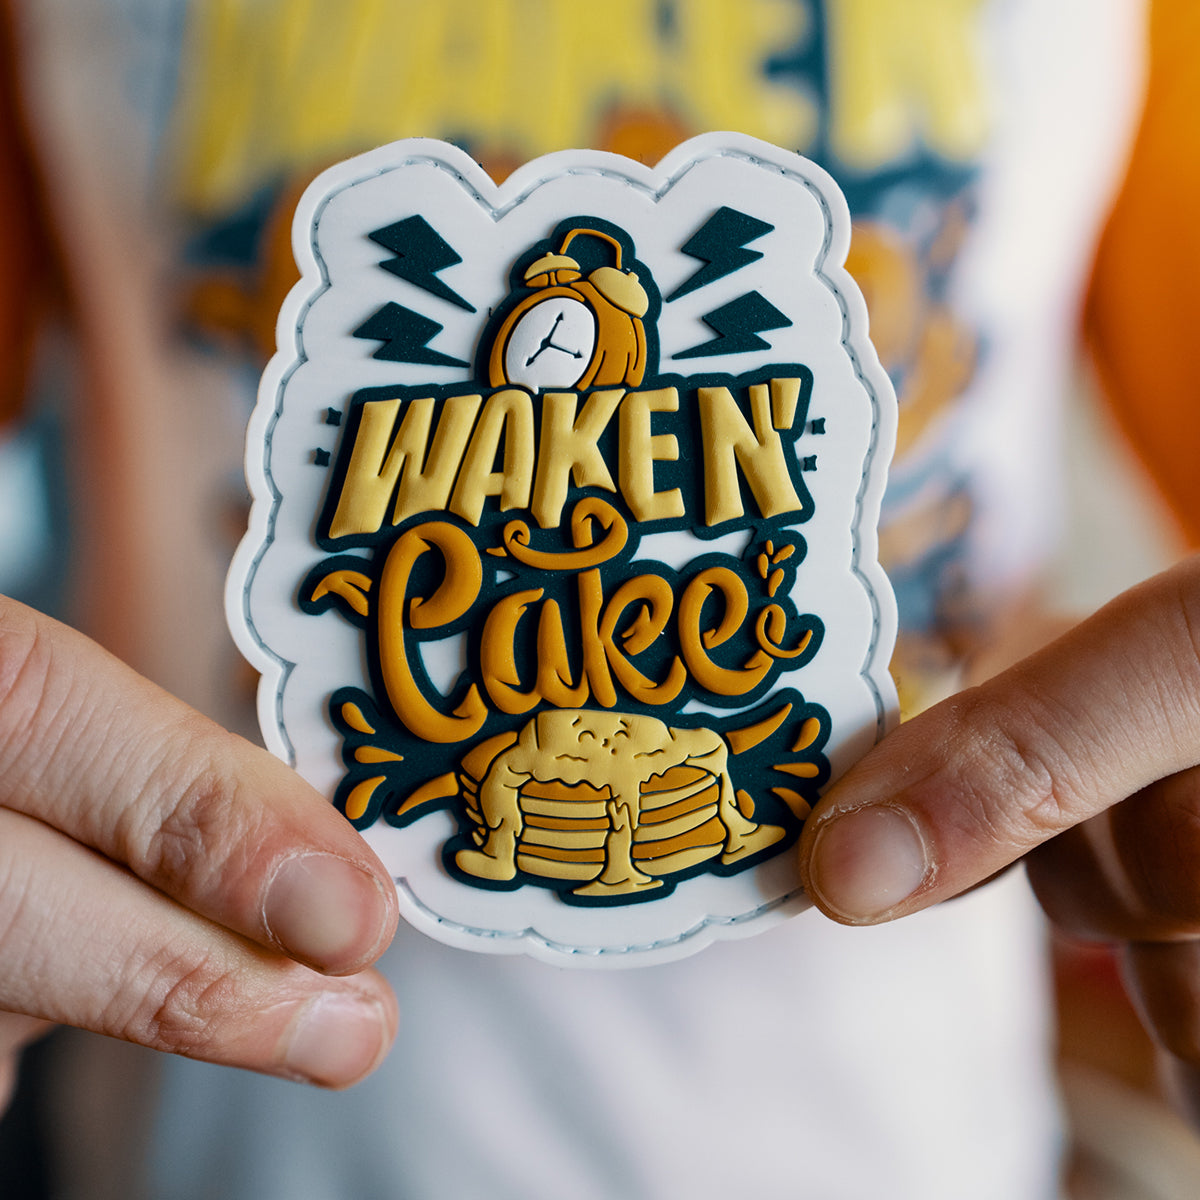 Wake N Cake Patch